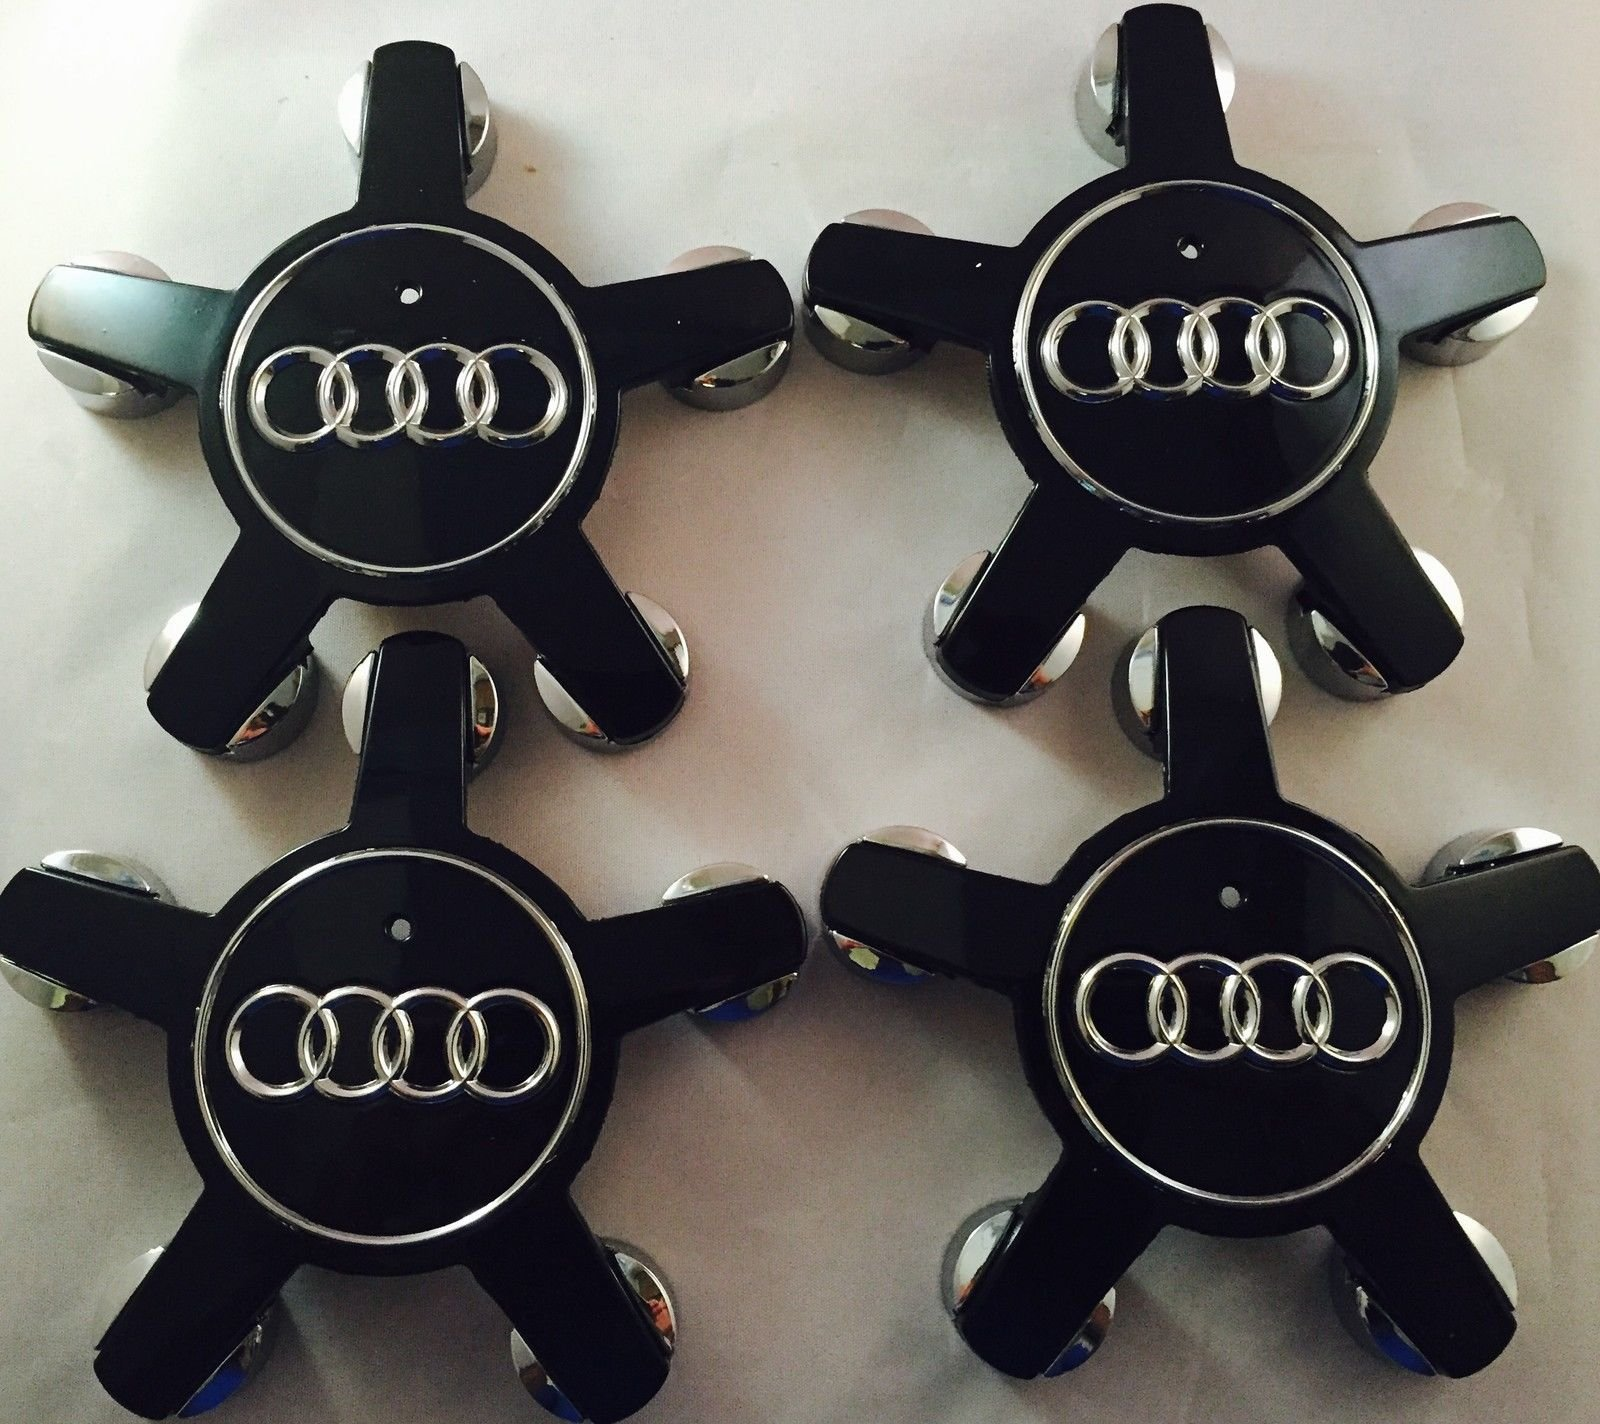 4pcs. AUDI WHEEL CENTER CAP A4 S4 S5 A5 A6 S6 S8 Q5 Q7 TT hub caps SET BLACK